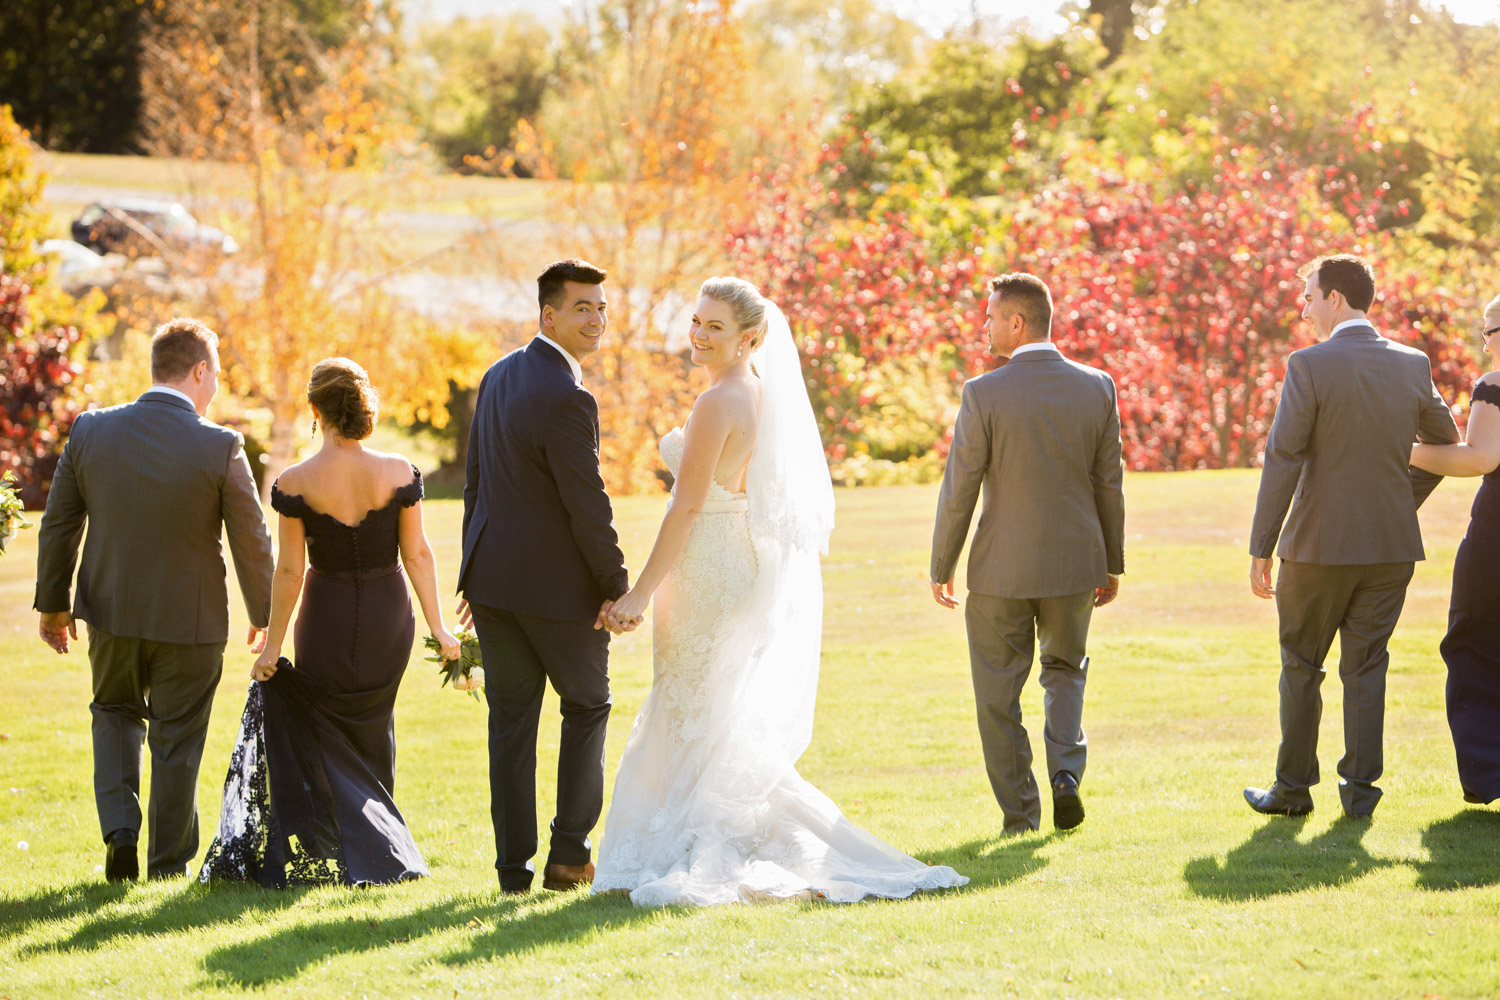 wedding-0330-stoneridge-estate-garden-autumn-australia.jpg